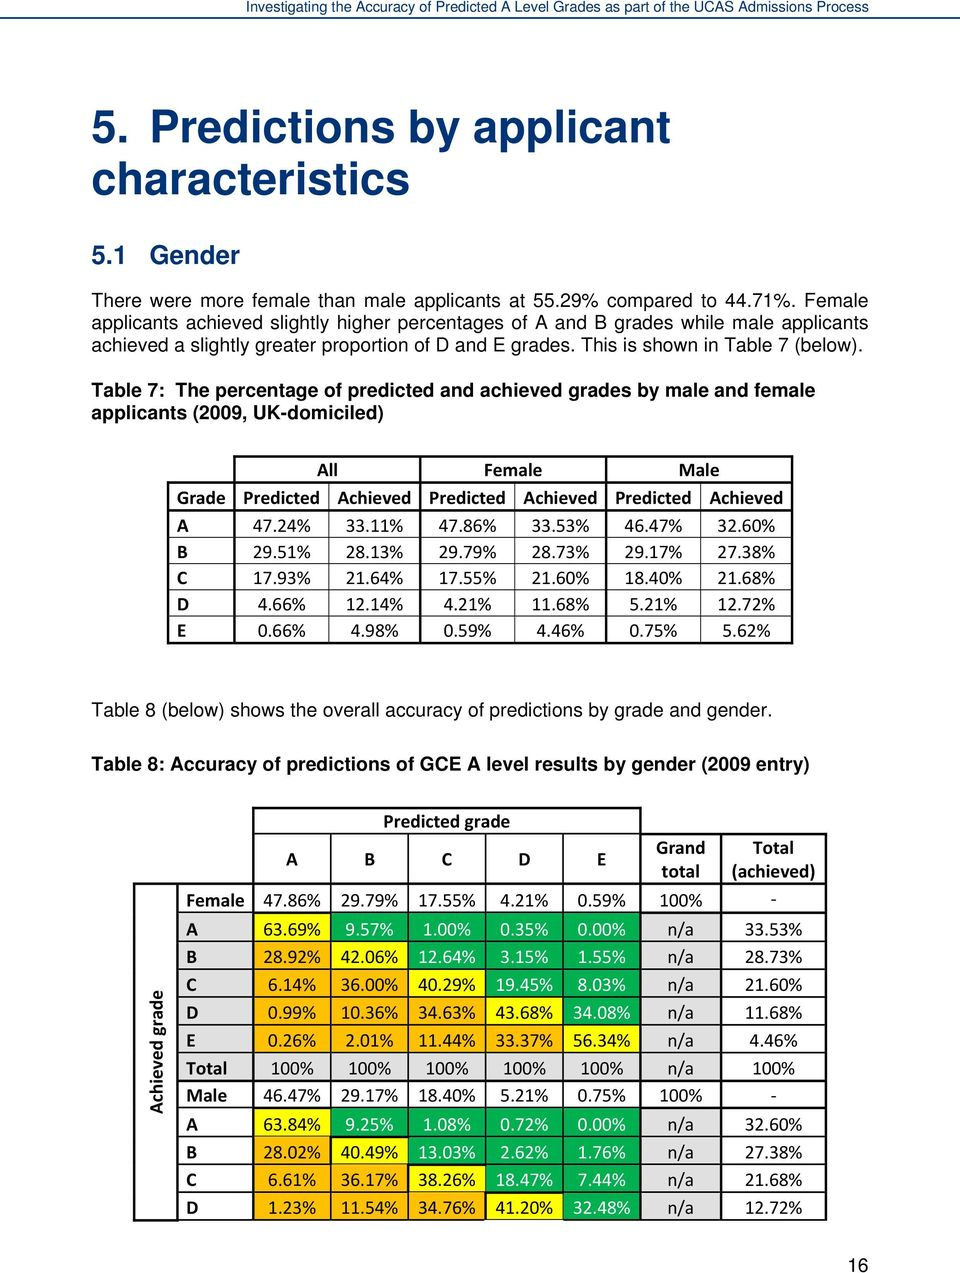 Table 7: The percentage of predicted and achieved grades by male and female applicants (2009, UK-domiciled) All Female Male Grade Predicted Achieved Predicted Achieved Predicted Achieved A 47.24% 33.